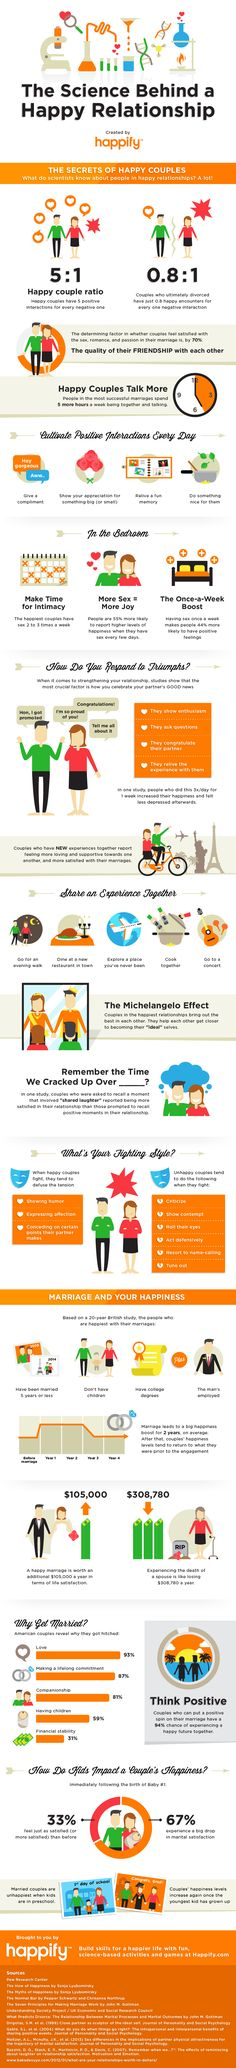 ... means being Happy. Interesting info here... The Science Behind a Happy Relationship: 21 Insightful Facts